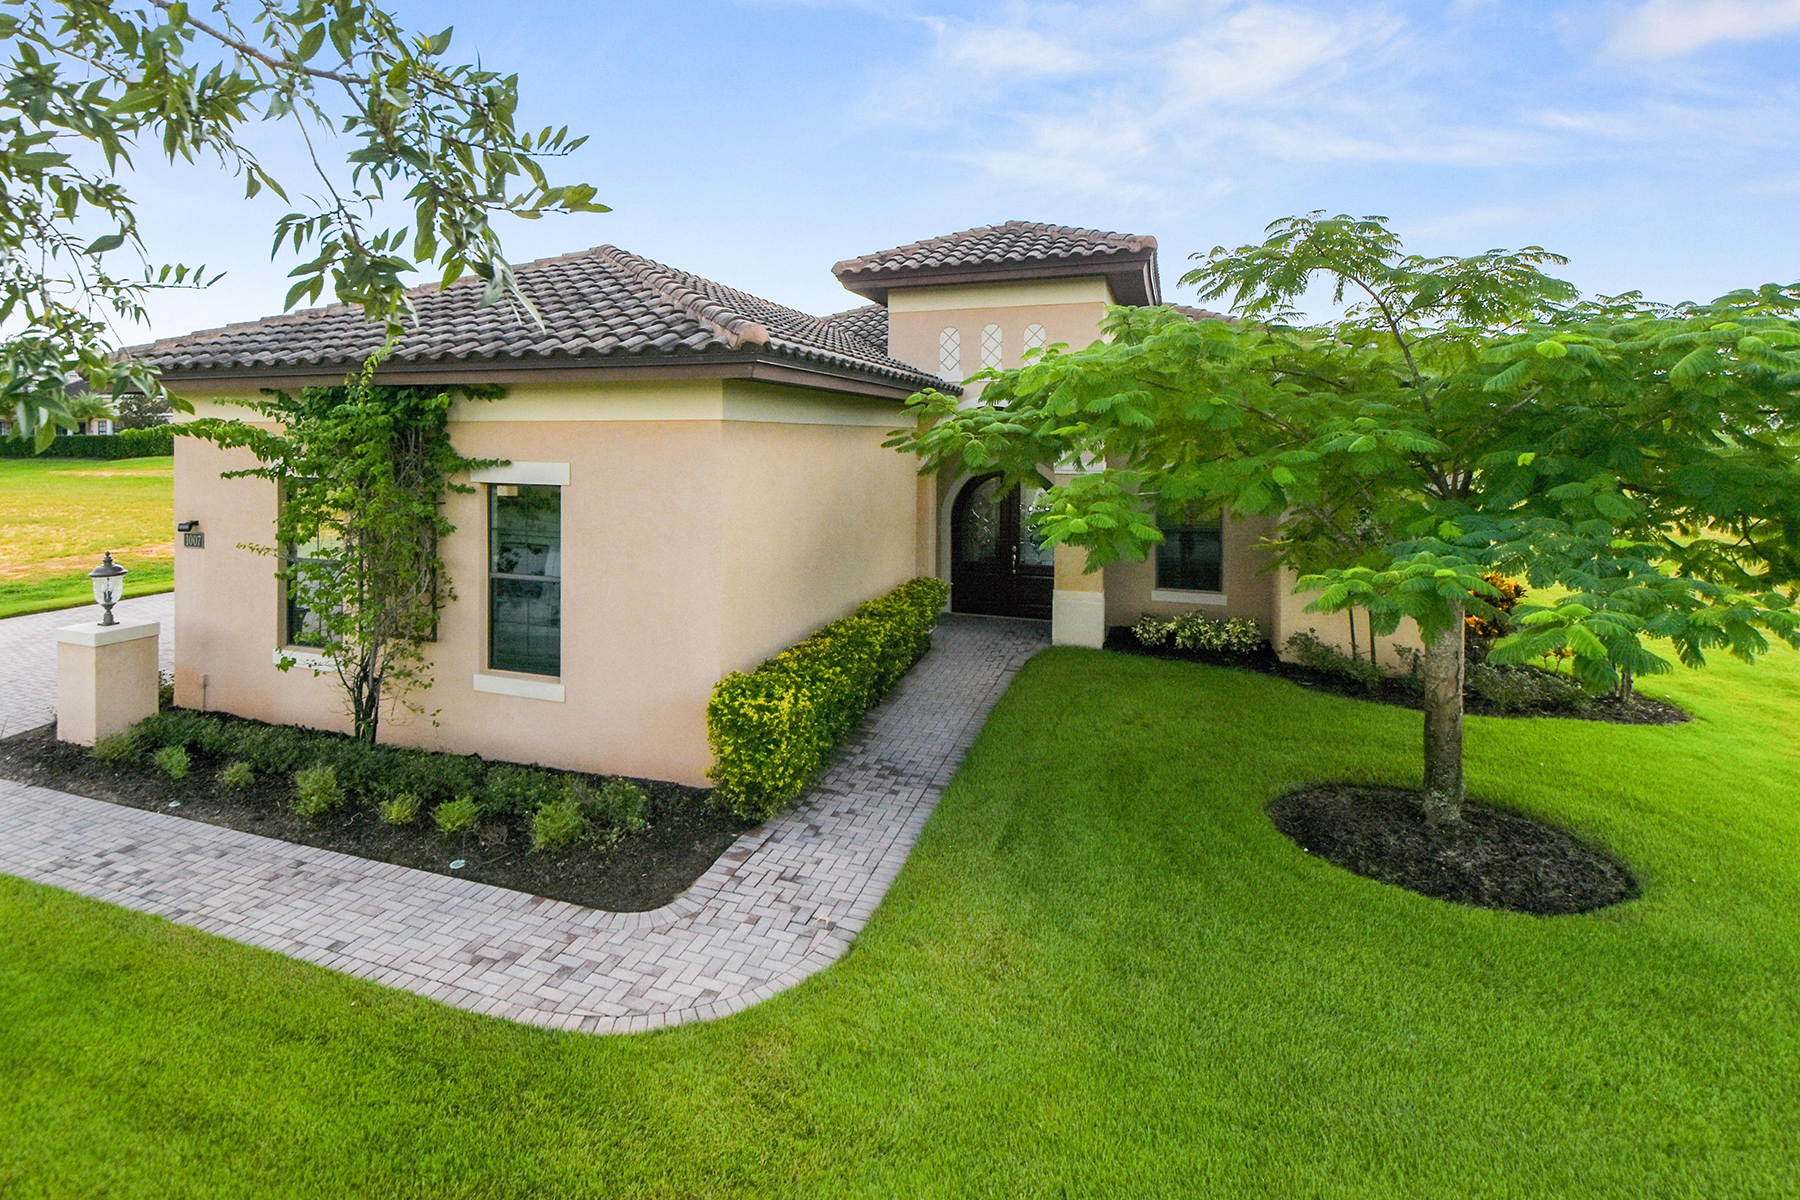 Maison unifamiliale pour l Vente à KISSIMMEE-ORLANDO 1007 Coyote Creek Way, Reunion, Florida, 34747 États-Unis